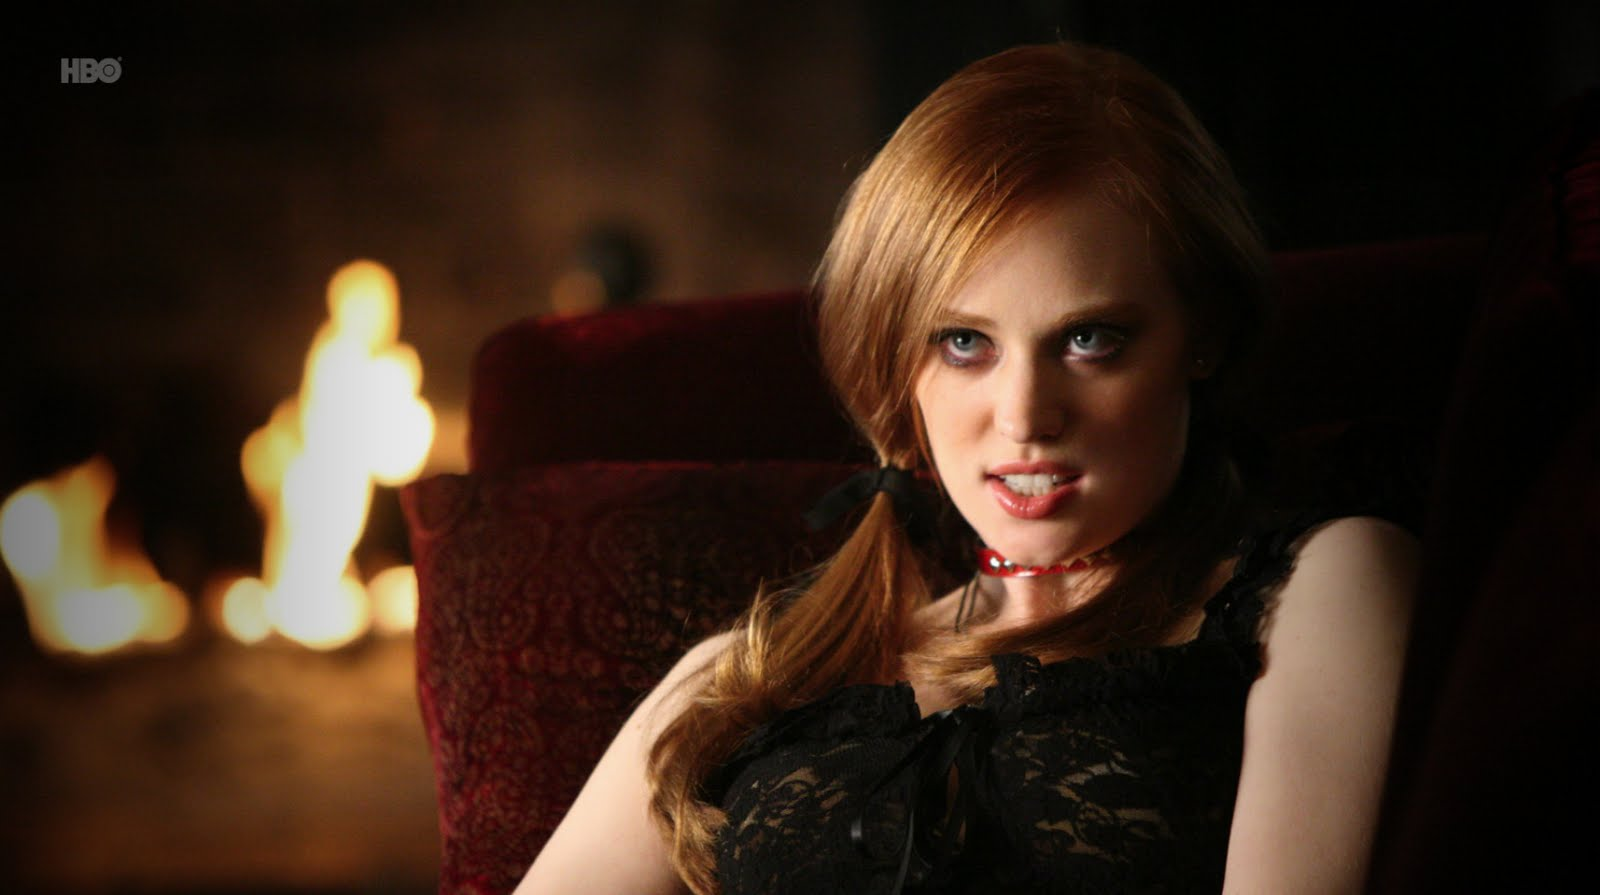 Girls With Lips Wallpaper Shucky Ducky Deborah Ann Woll Taylor Network Of Podcasts